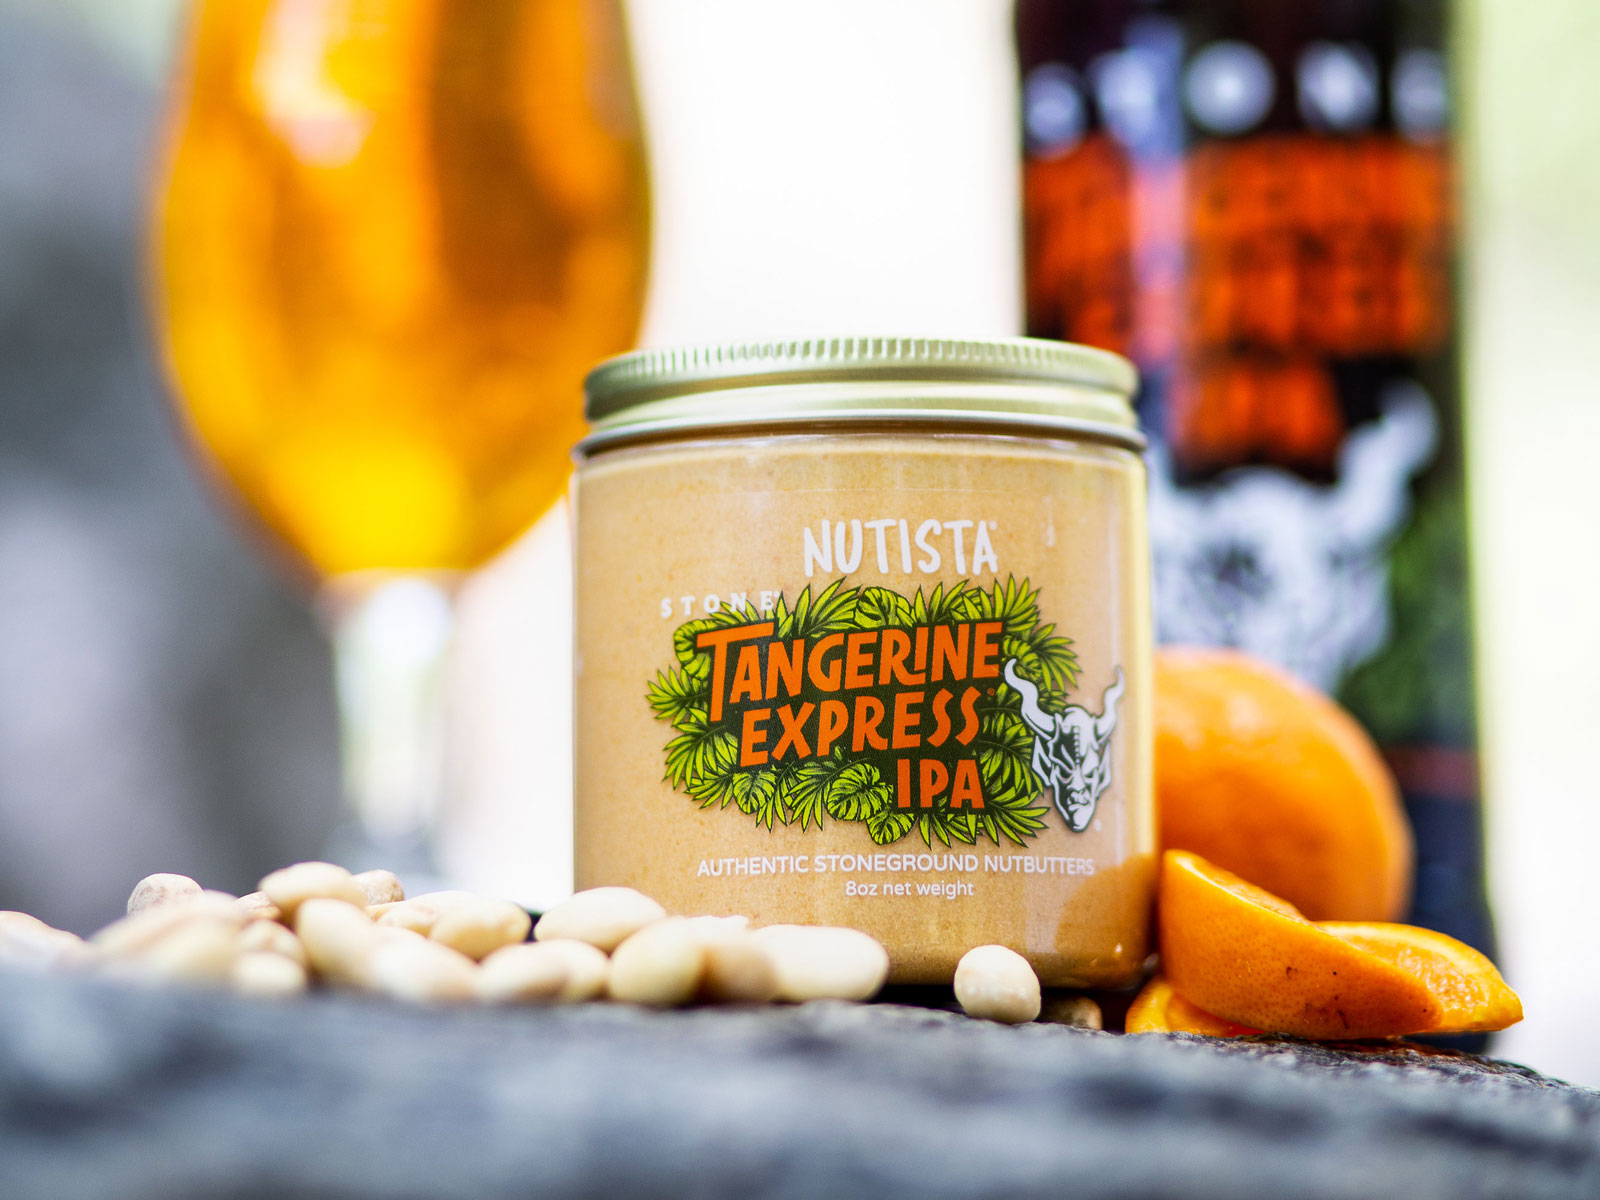 This IPA Nut Butter Is the Beer-Flavored Spread You've Been Waiting For